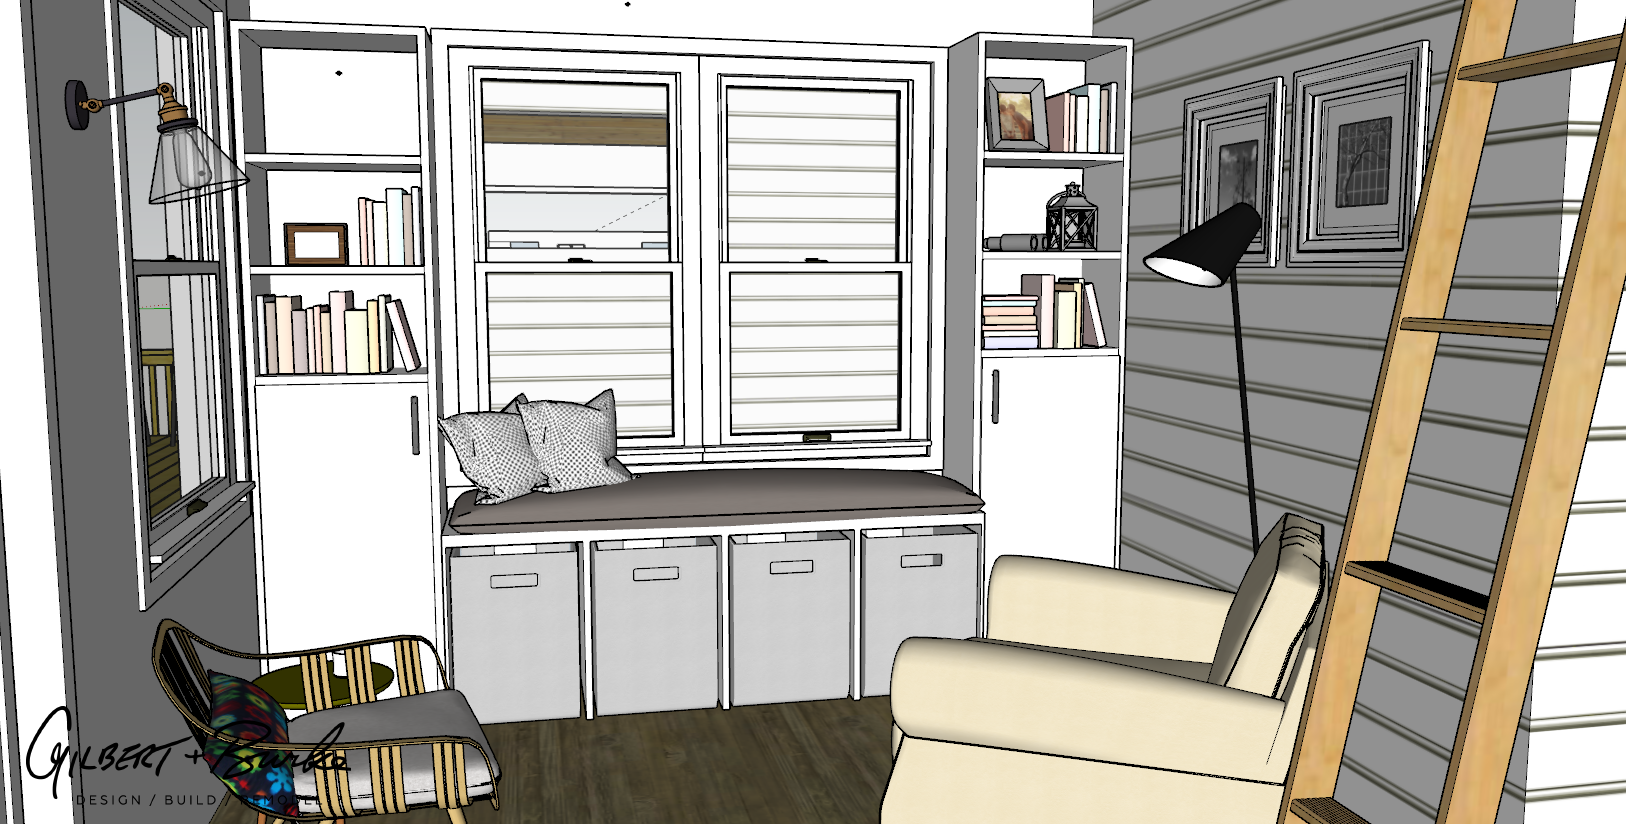 rough sketch concept of a small room with a window